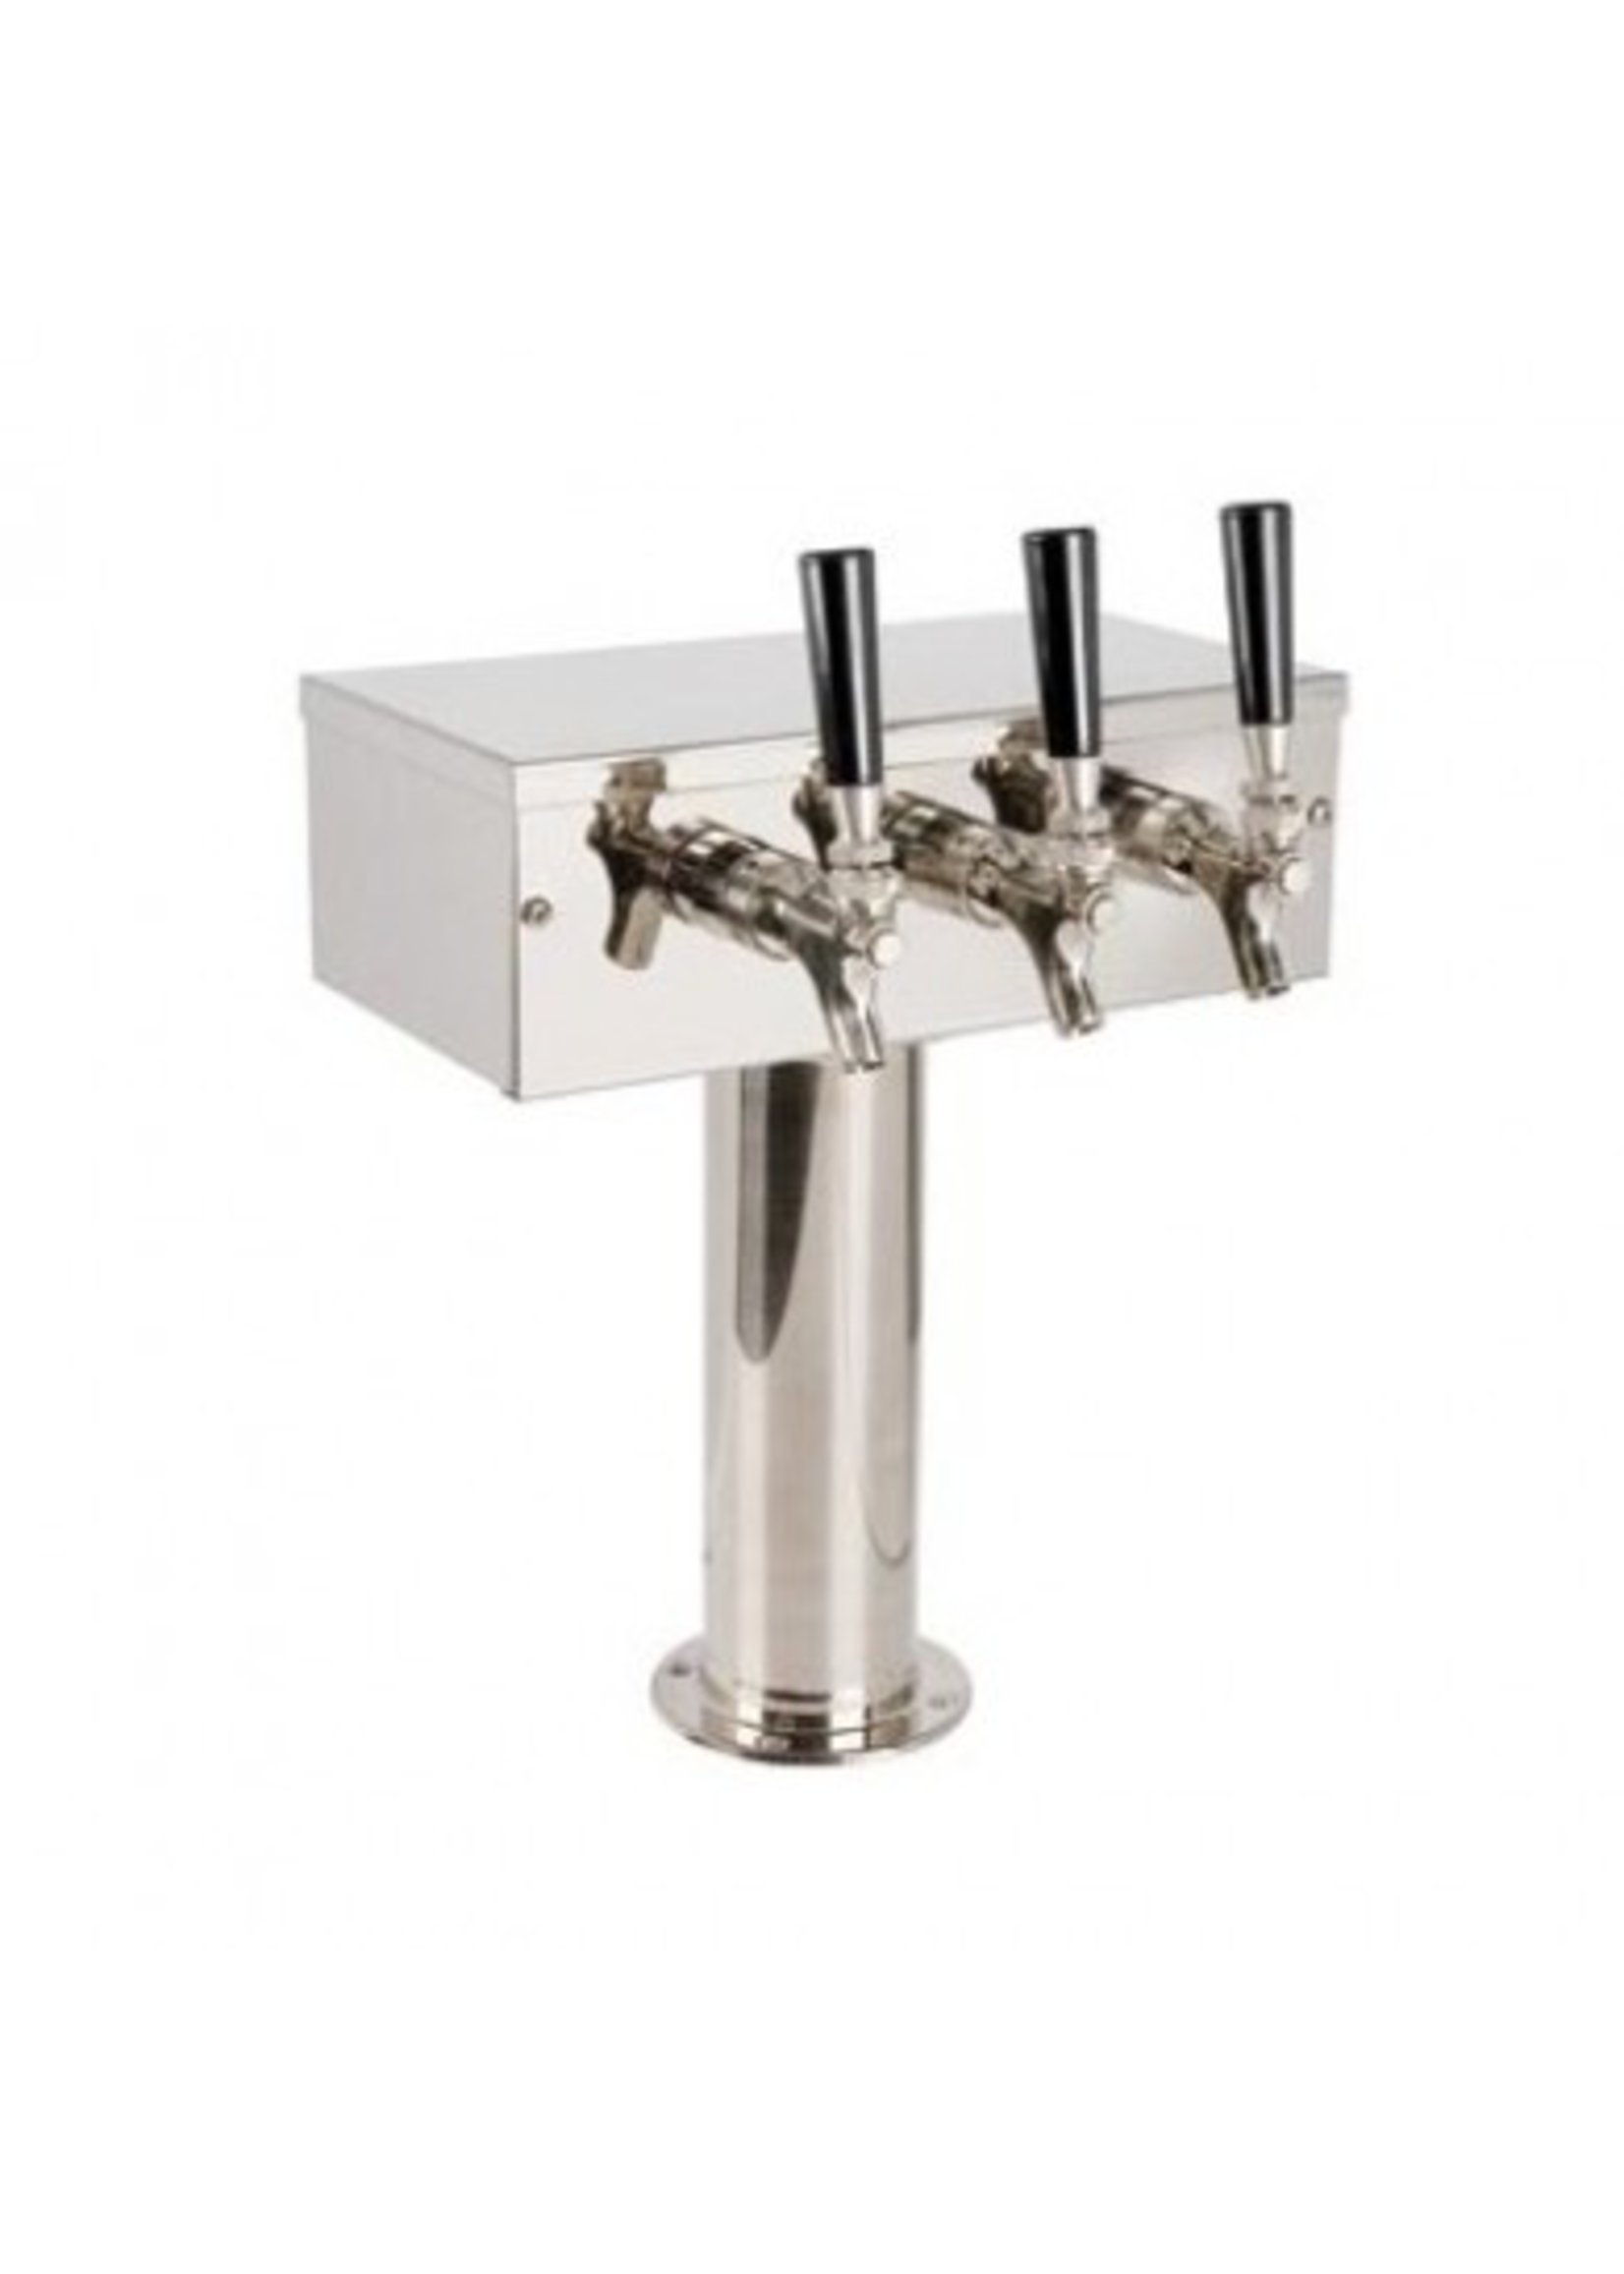 """Foxx """"T"""" Tower - Glycol Cooled - Stainless, 3"""" OD Round x 12"""" Wide - 3 Faucet (Stainless)"""